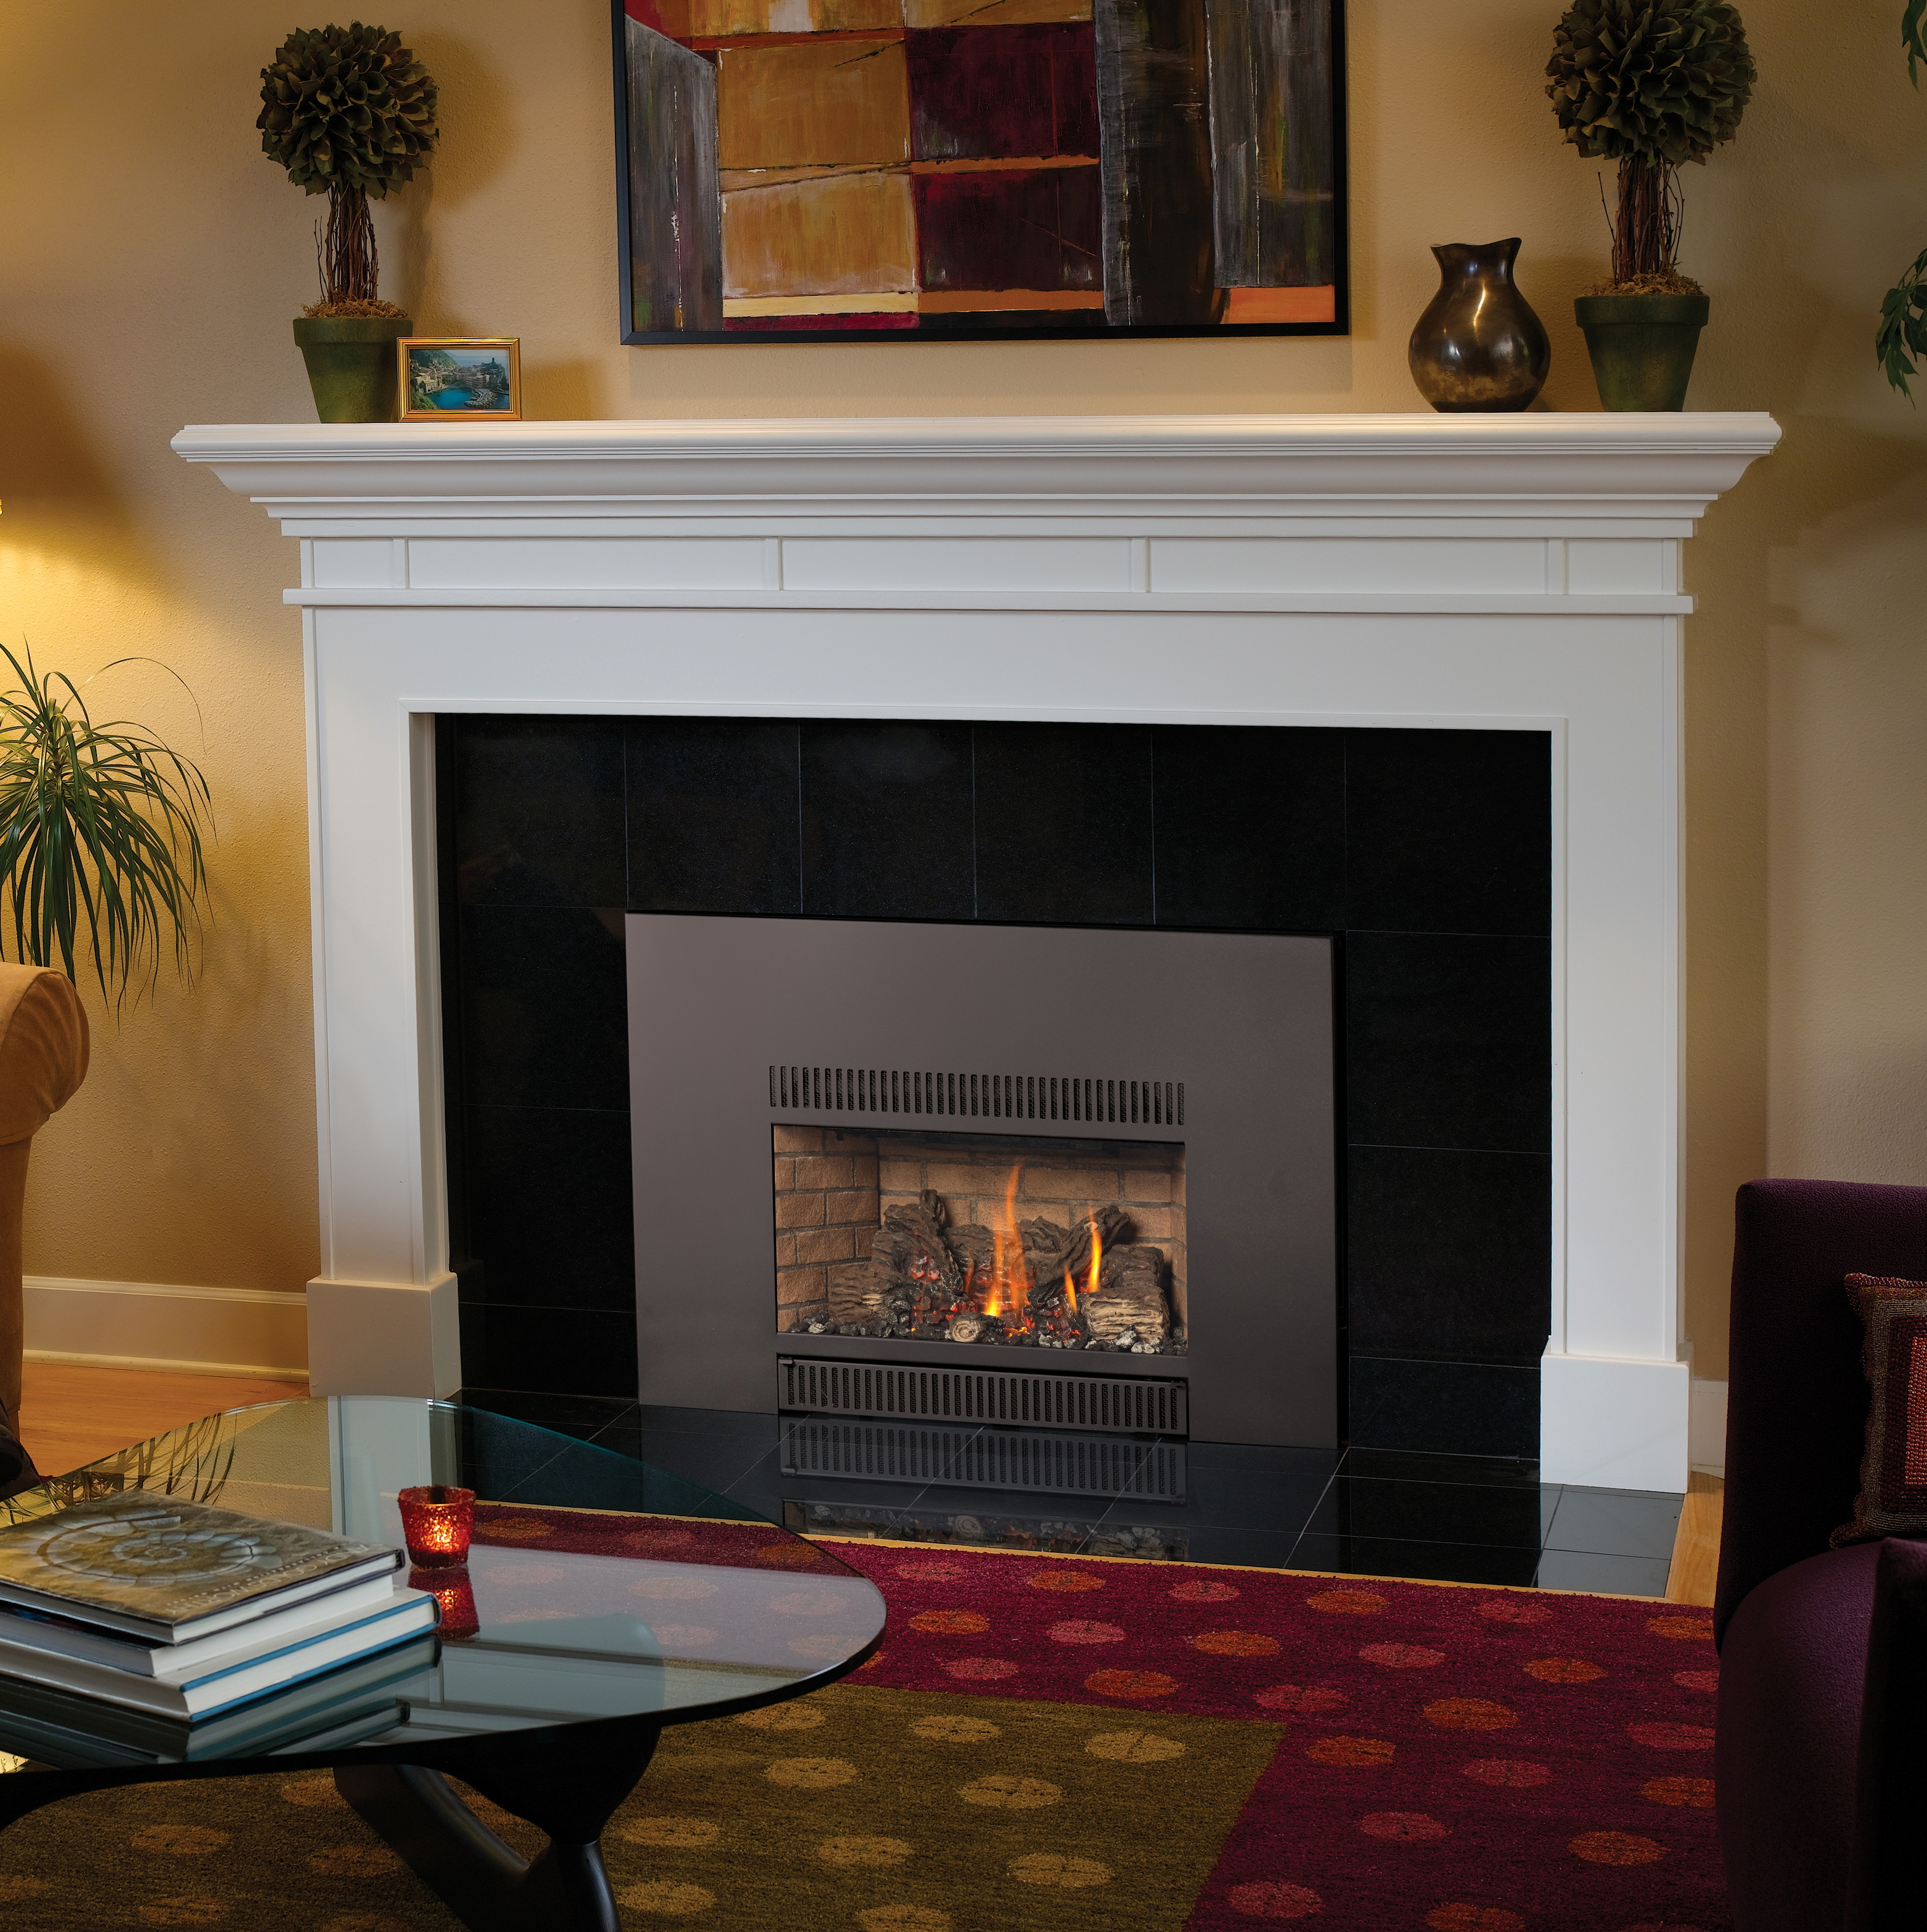 good convert wood fireplace to gas insert part 8 convert wood